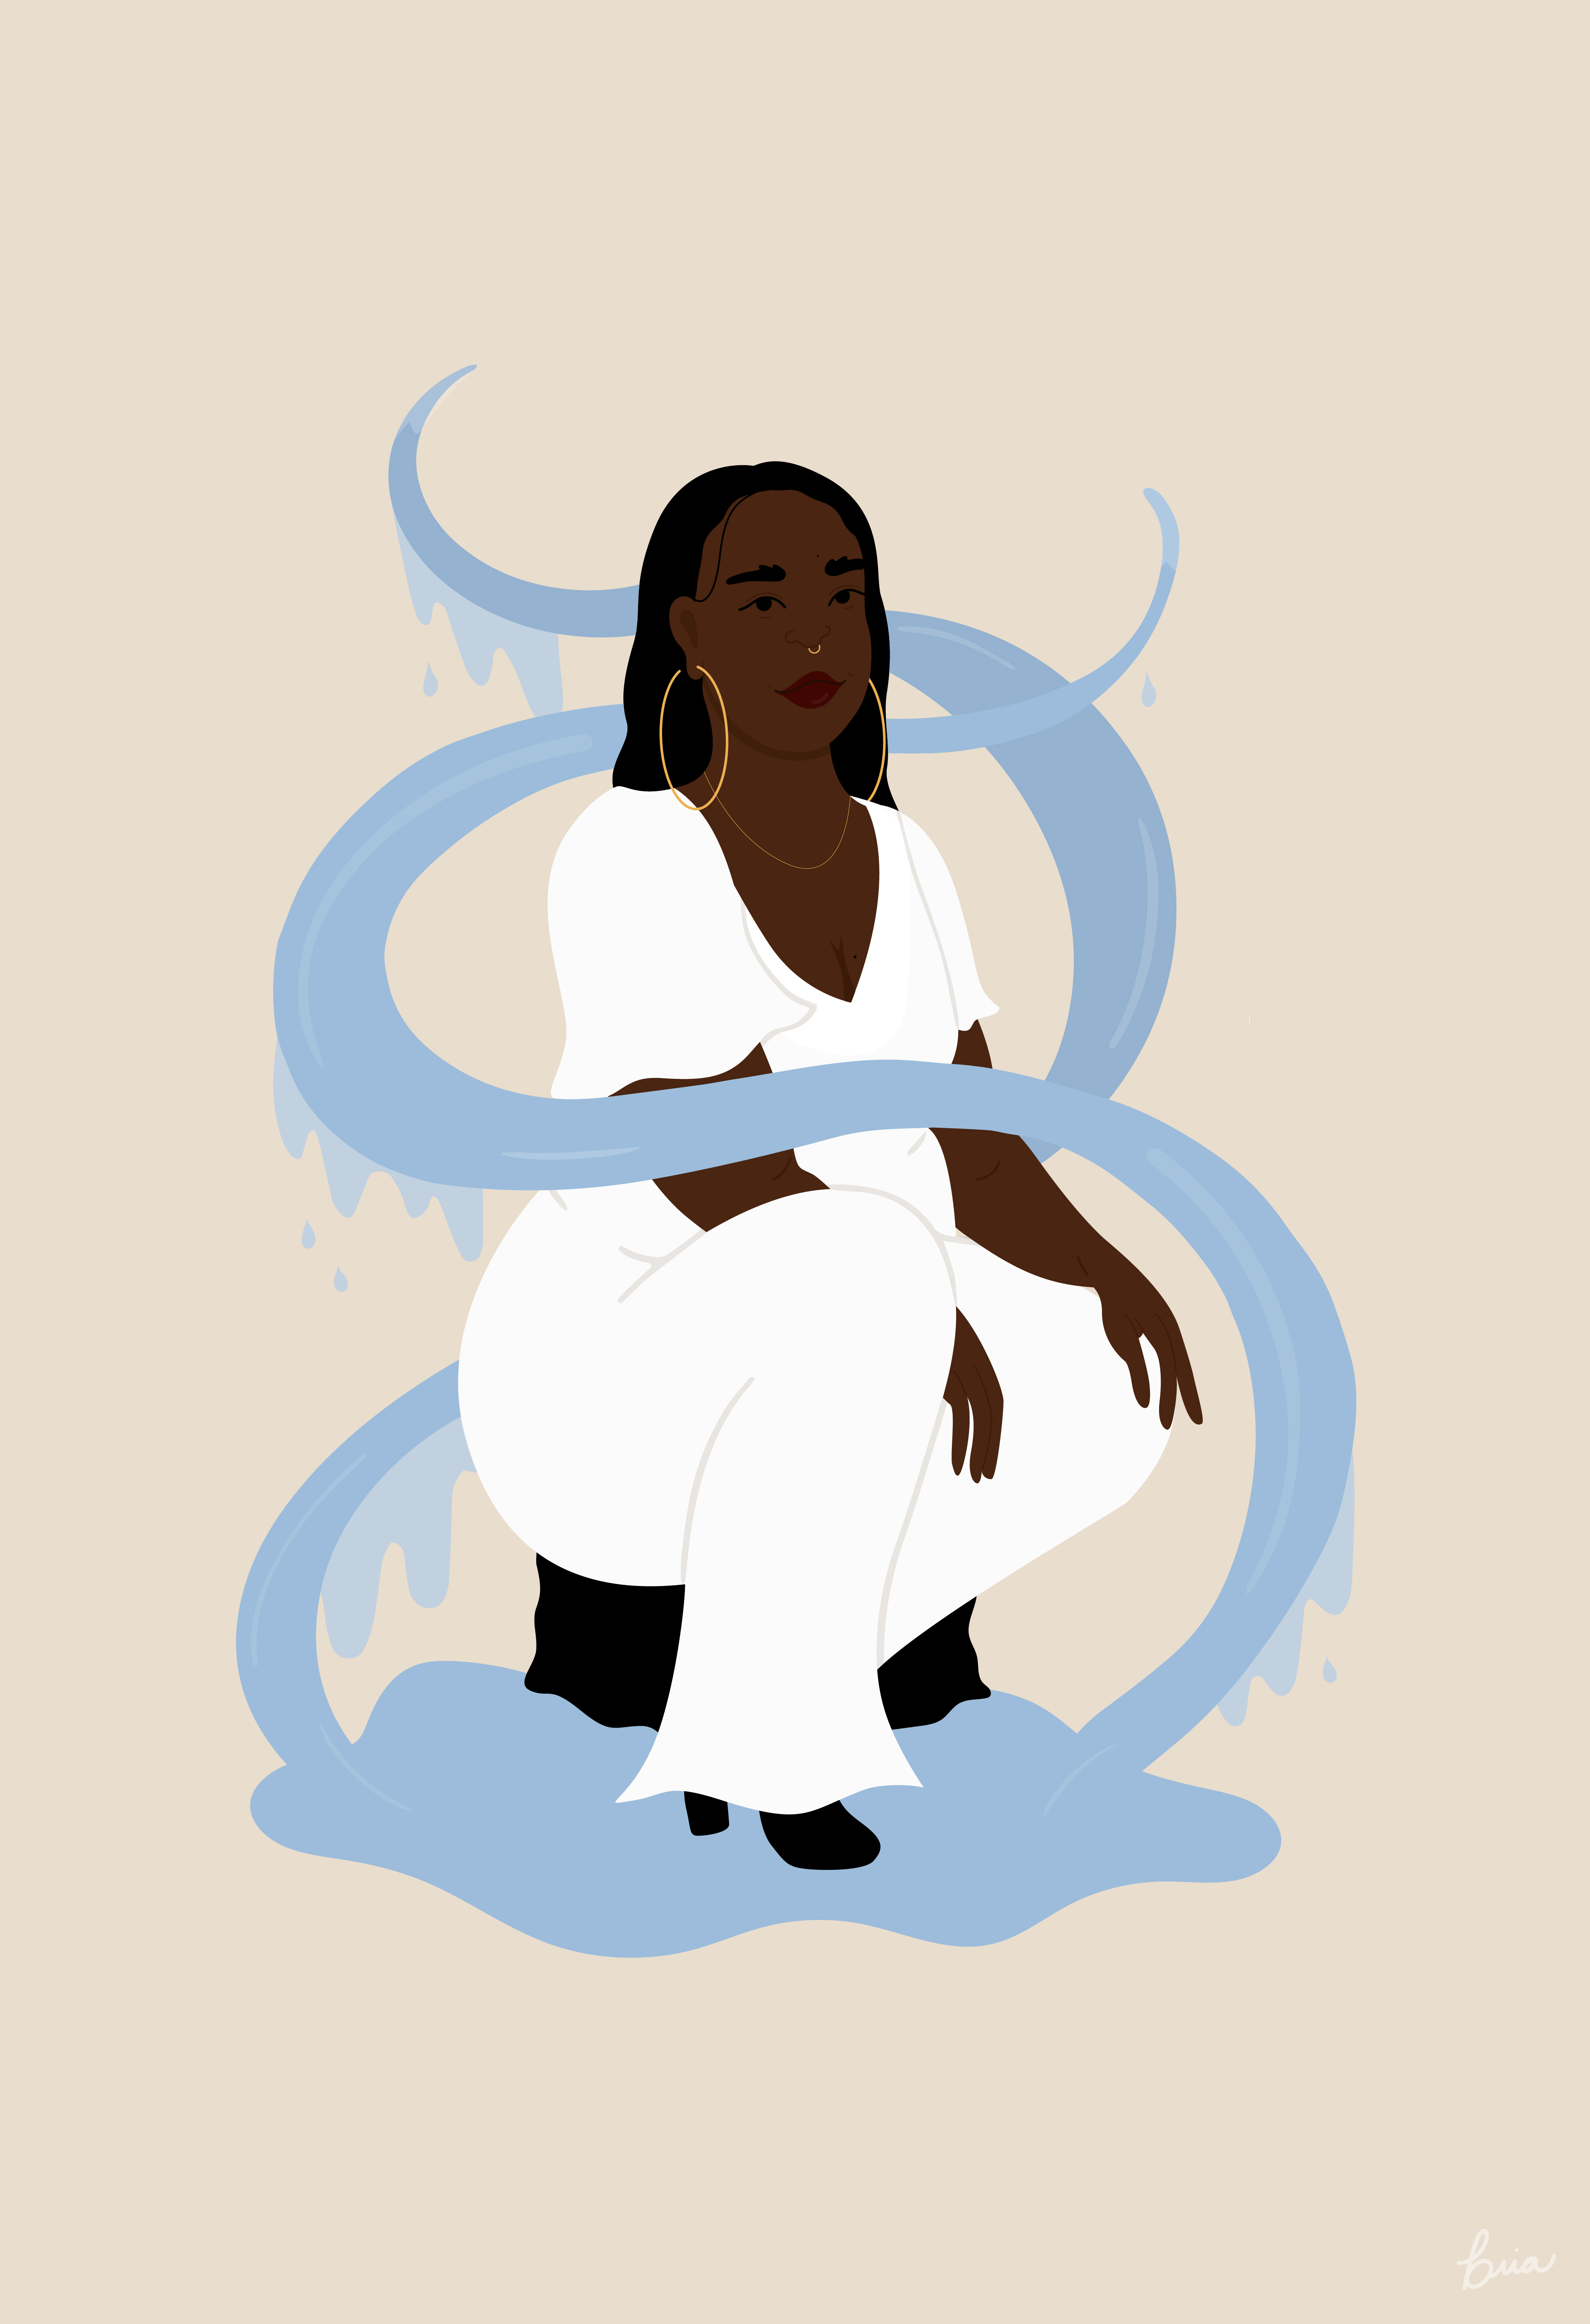 A Black woman in a white jumpsuit crouches in a pool of water.